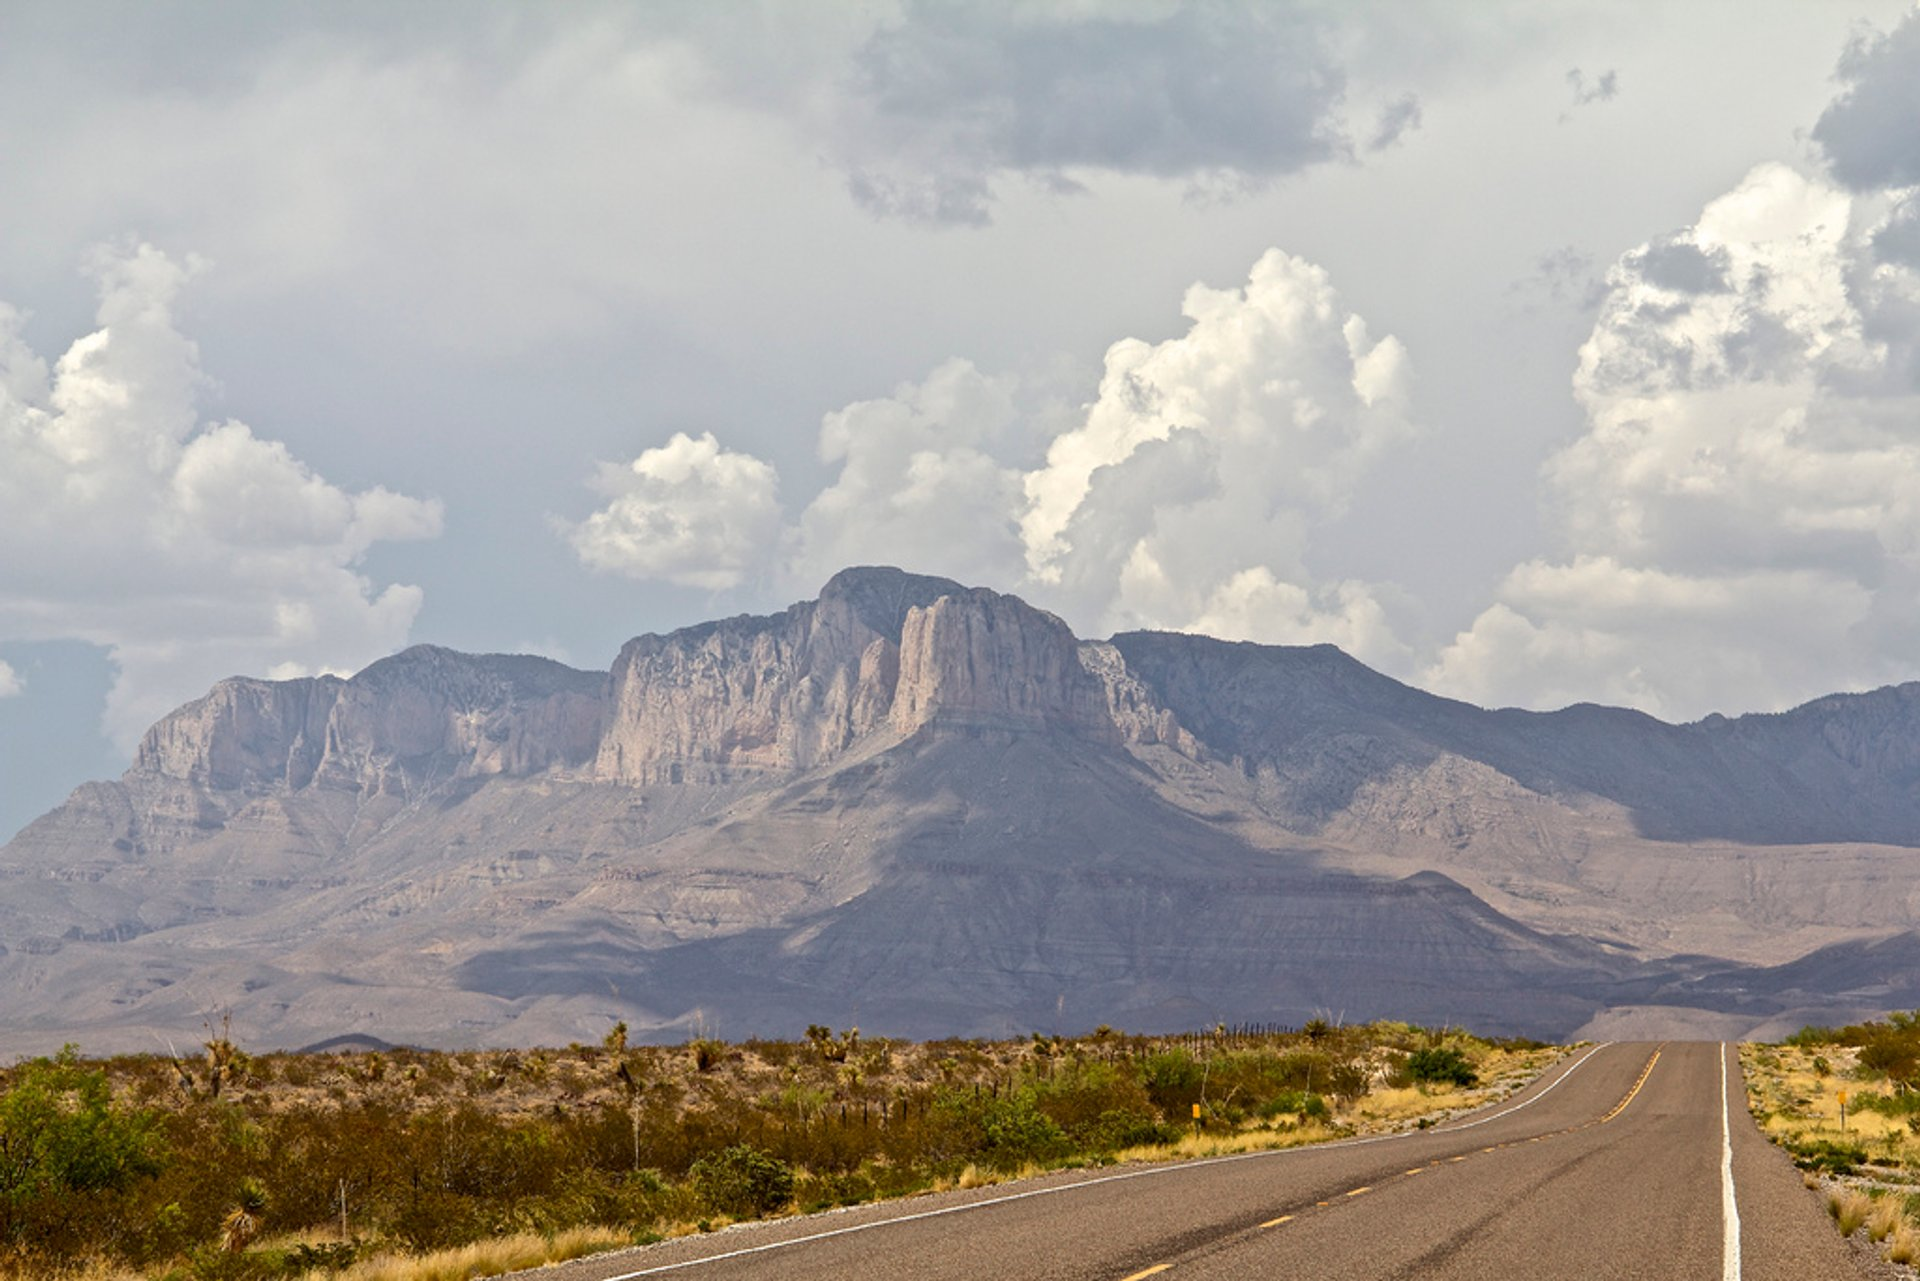 Hiking to Guadalupe Peak in Texas 2020 - Best Time